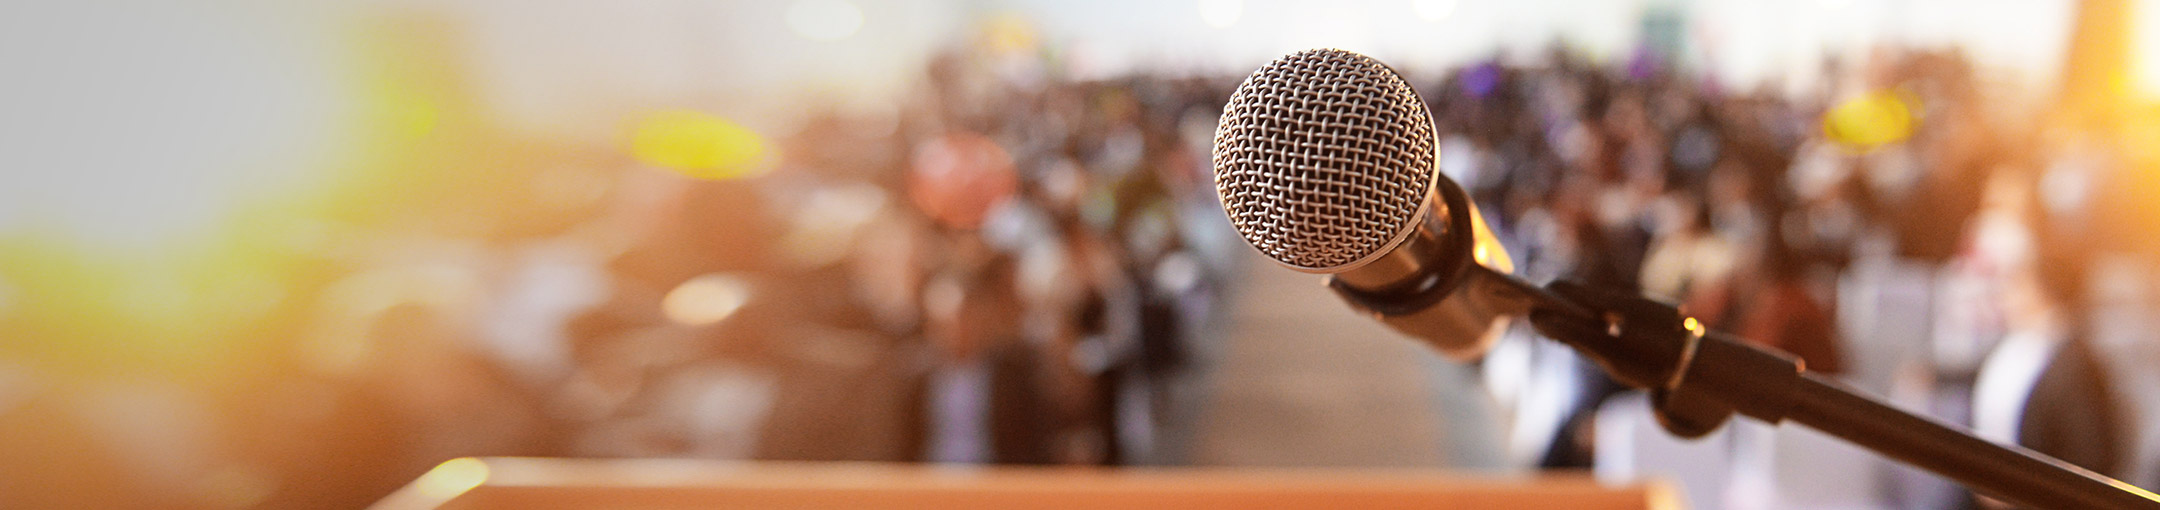 photo of a microphone in front of a crowd